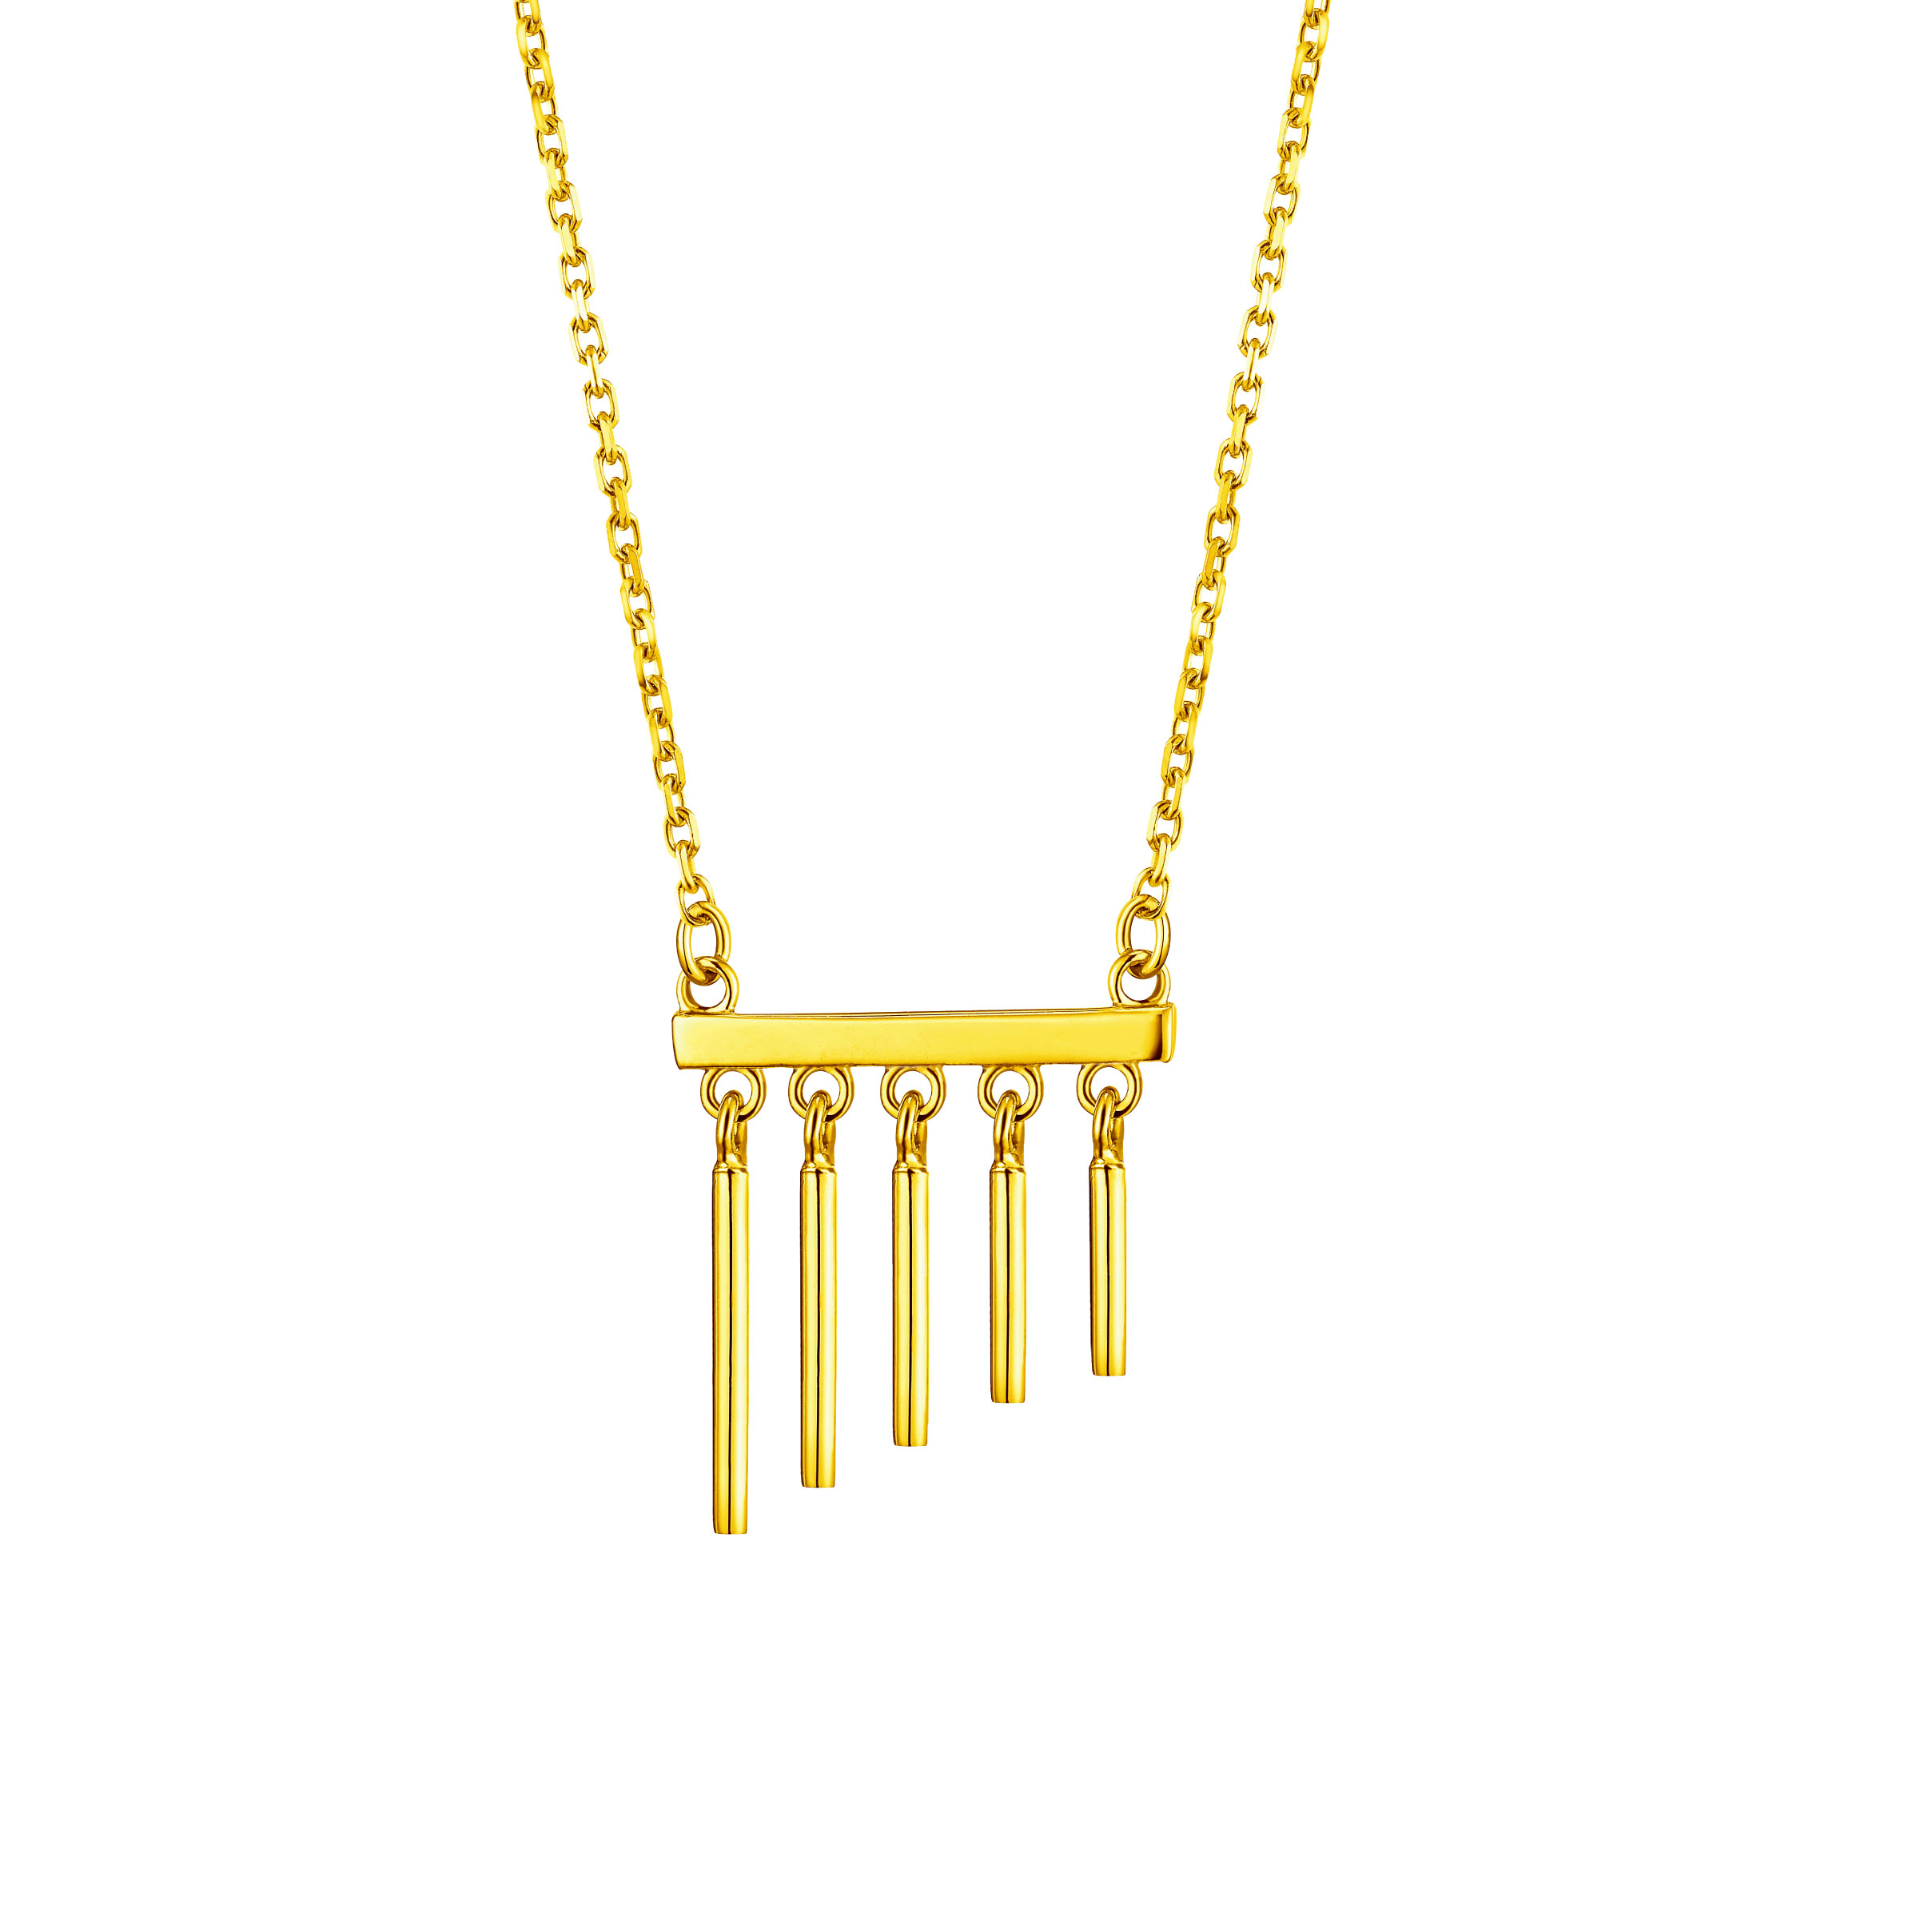 Goldstyle Wind Chimes Necklace